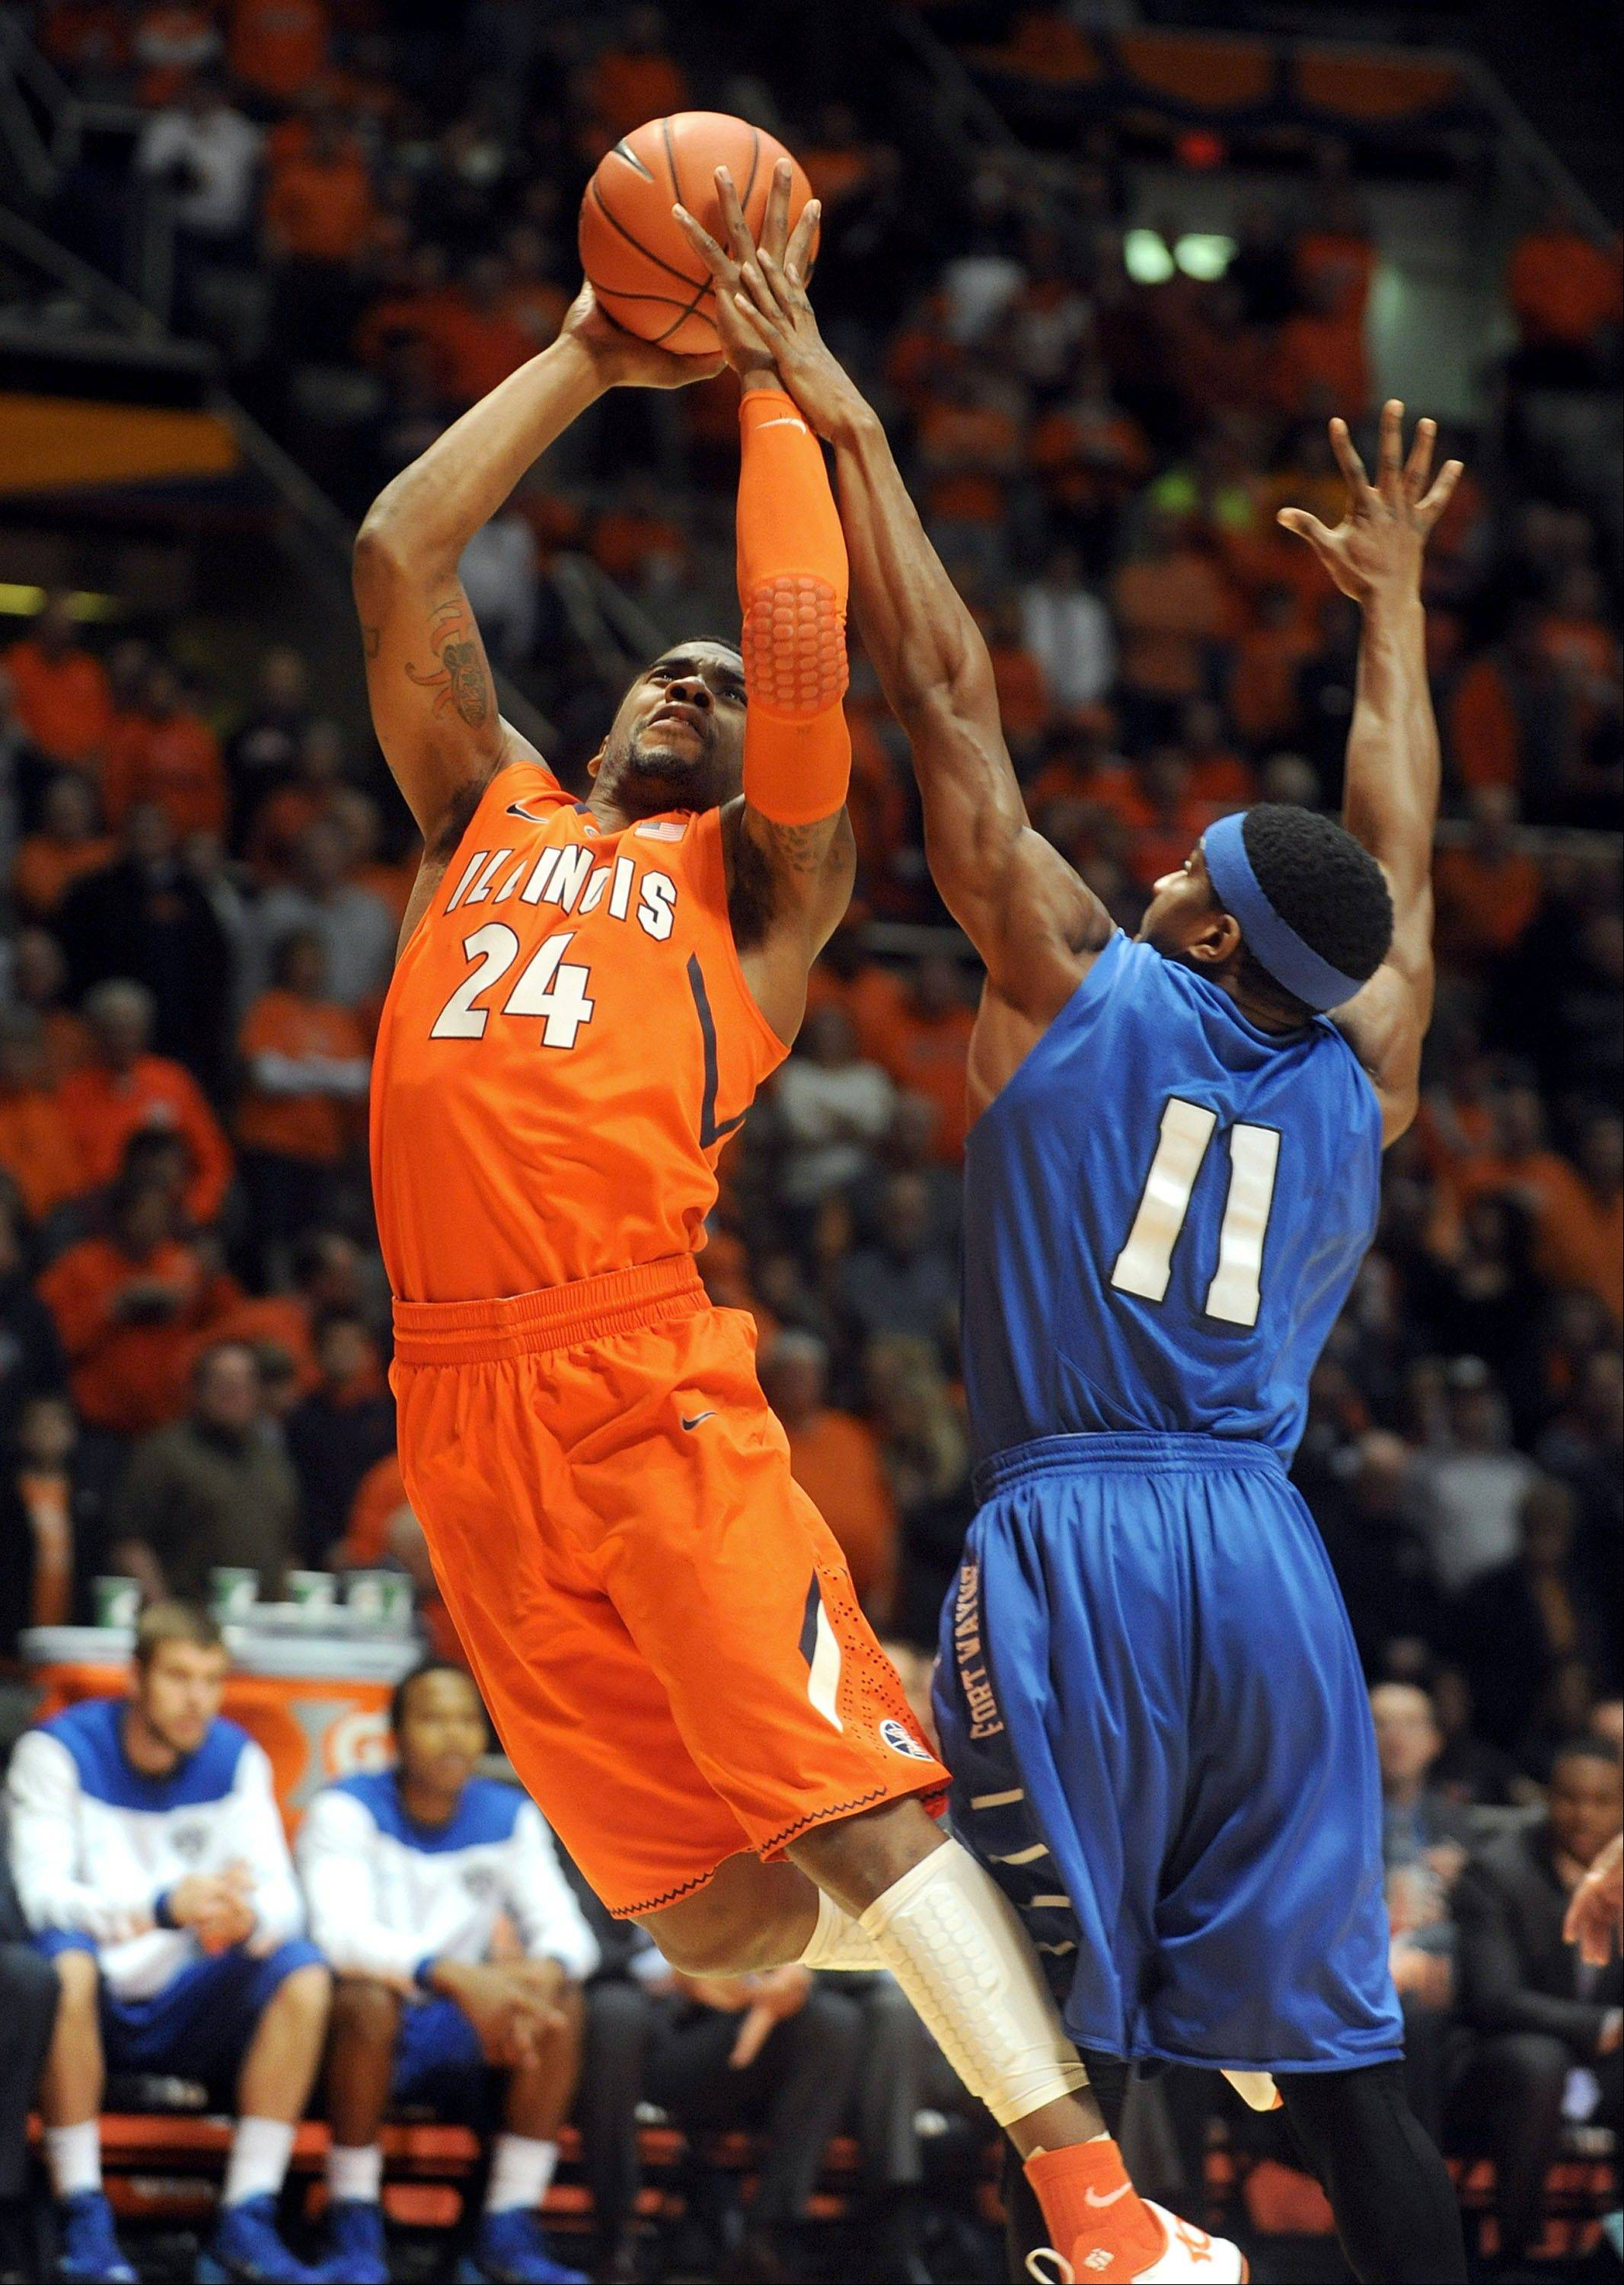 Illinois guard Rayvonte Rice (24) goes up for a basket against IPFW's Isaiah McCray during the first half at State Farm Center in Champaign.